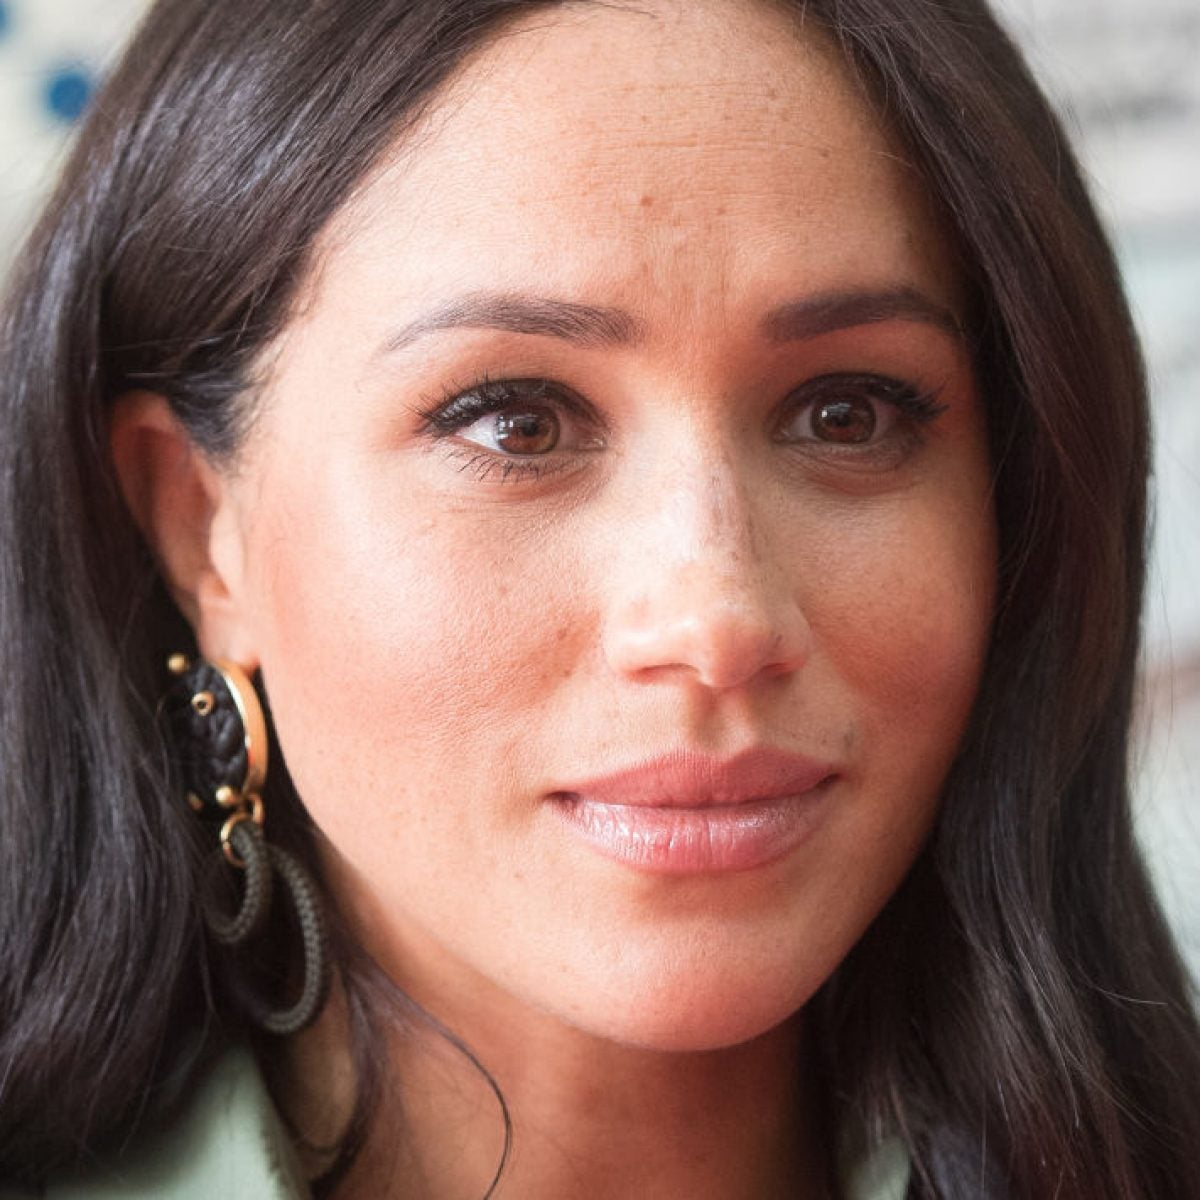 Meghan Markle Calls Time As A Royal 'Almost Unsurvivable' In Upcoming Interview With Oprah